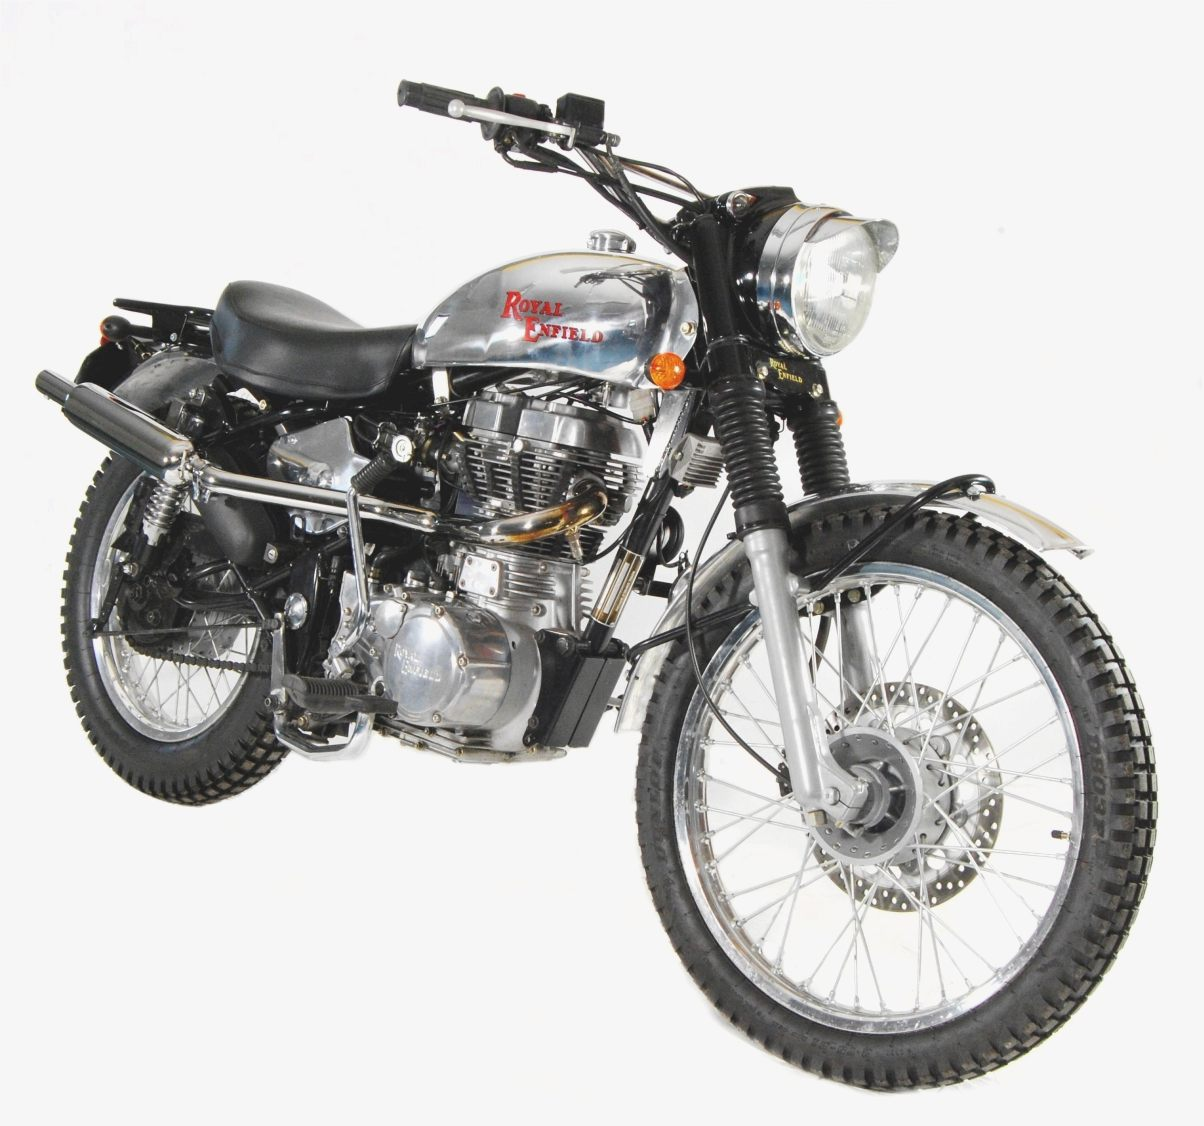 Royal Enfield Bullet 500 Trial Trail 2007 images #123674